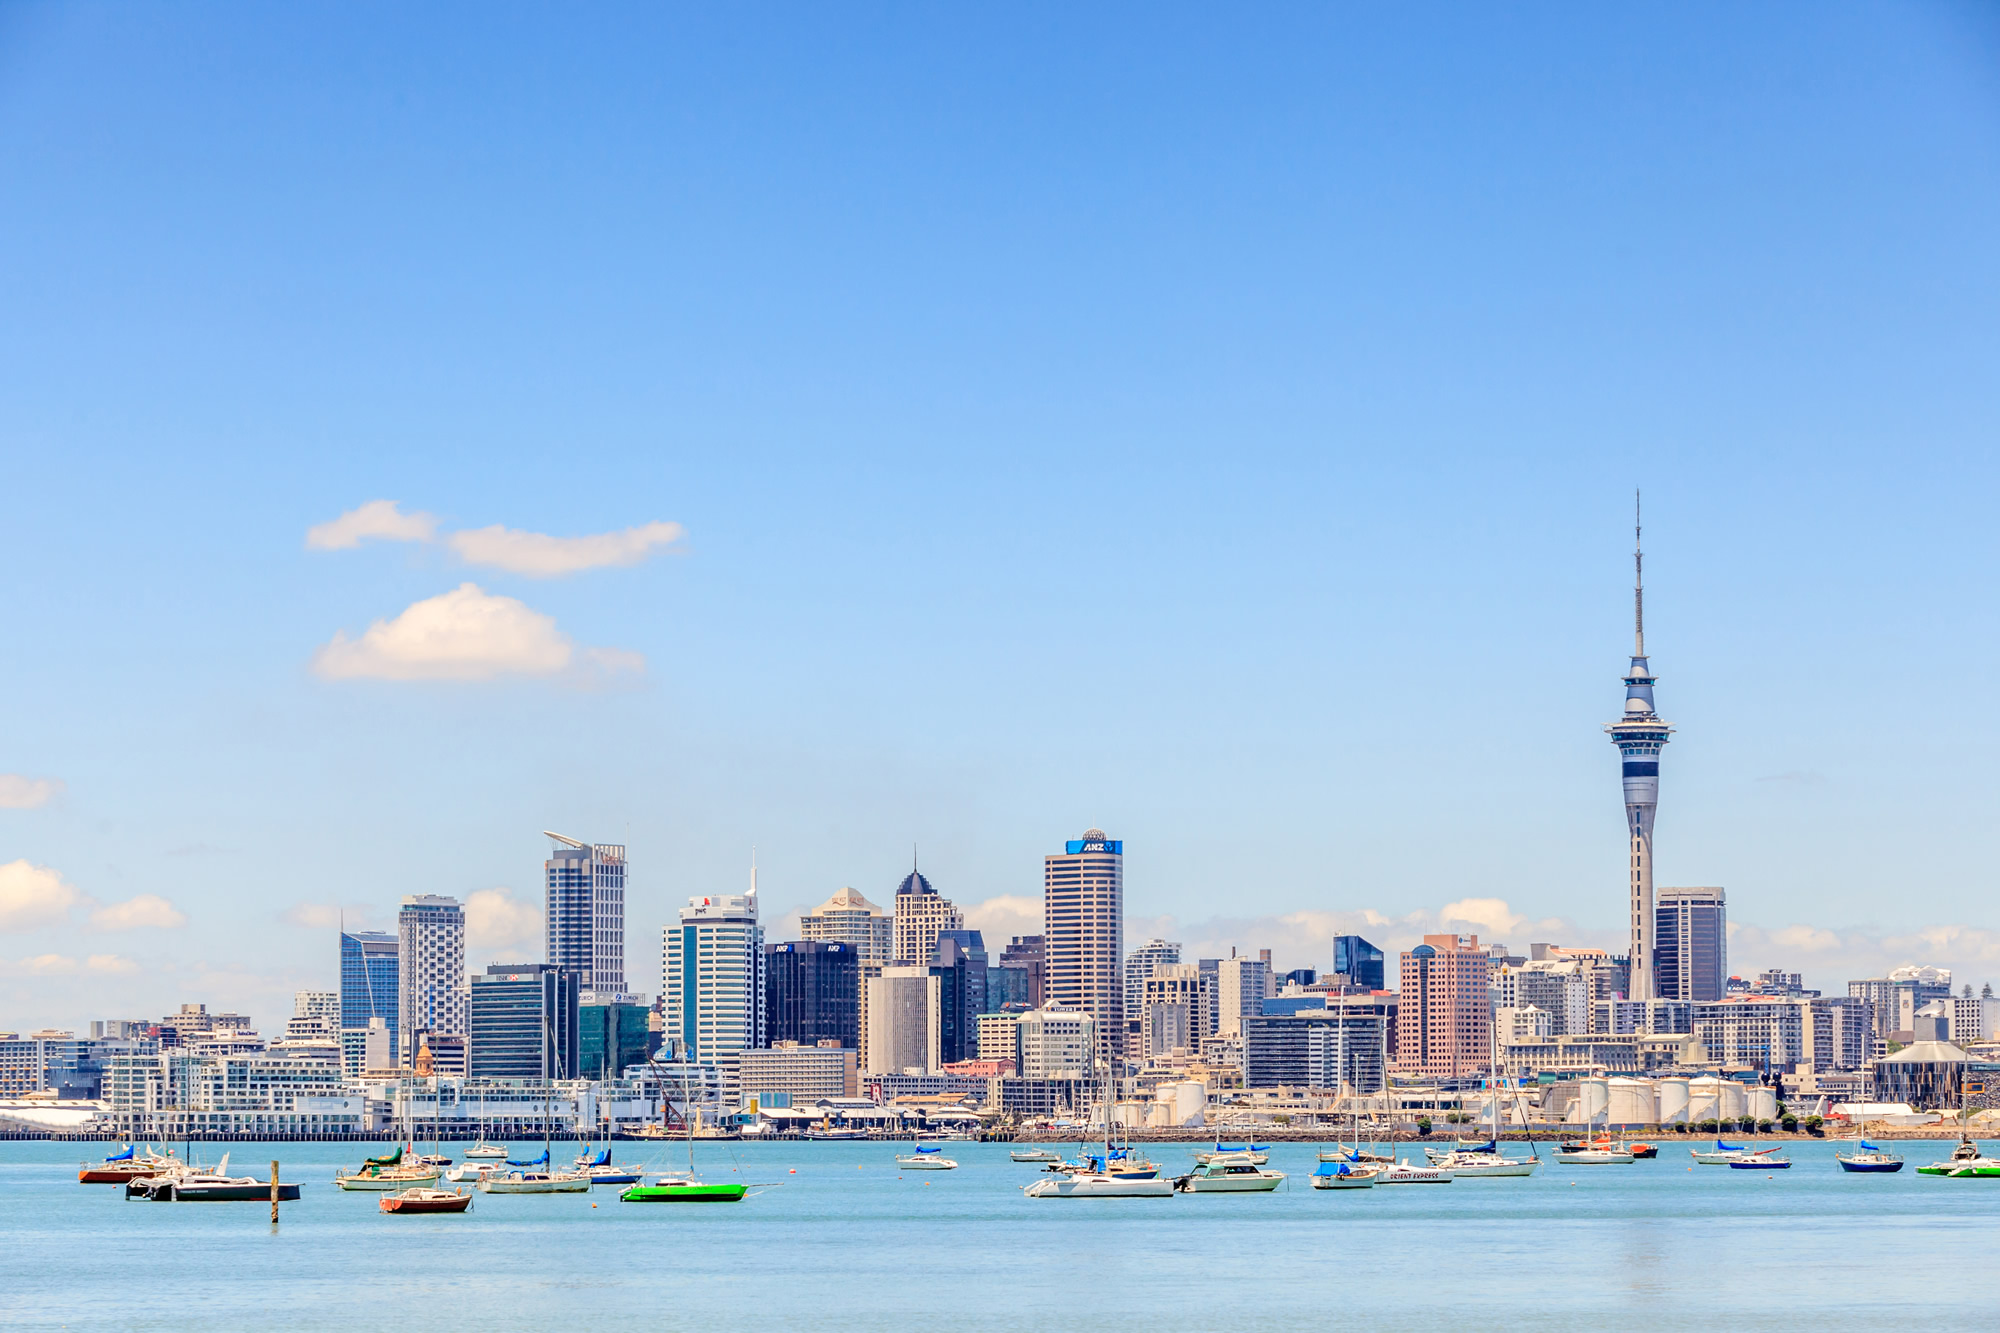 Cityscape of Auckland, New Zealand